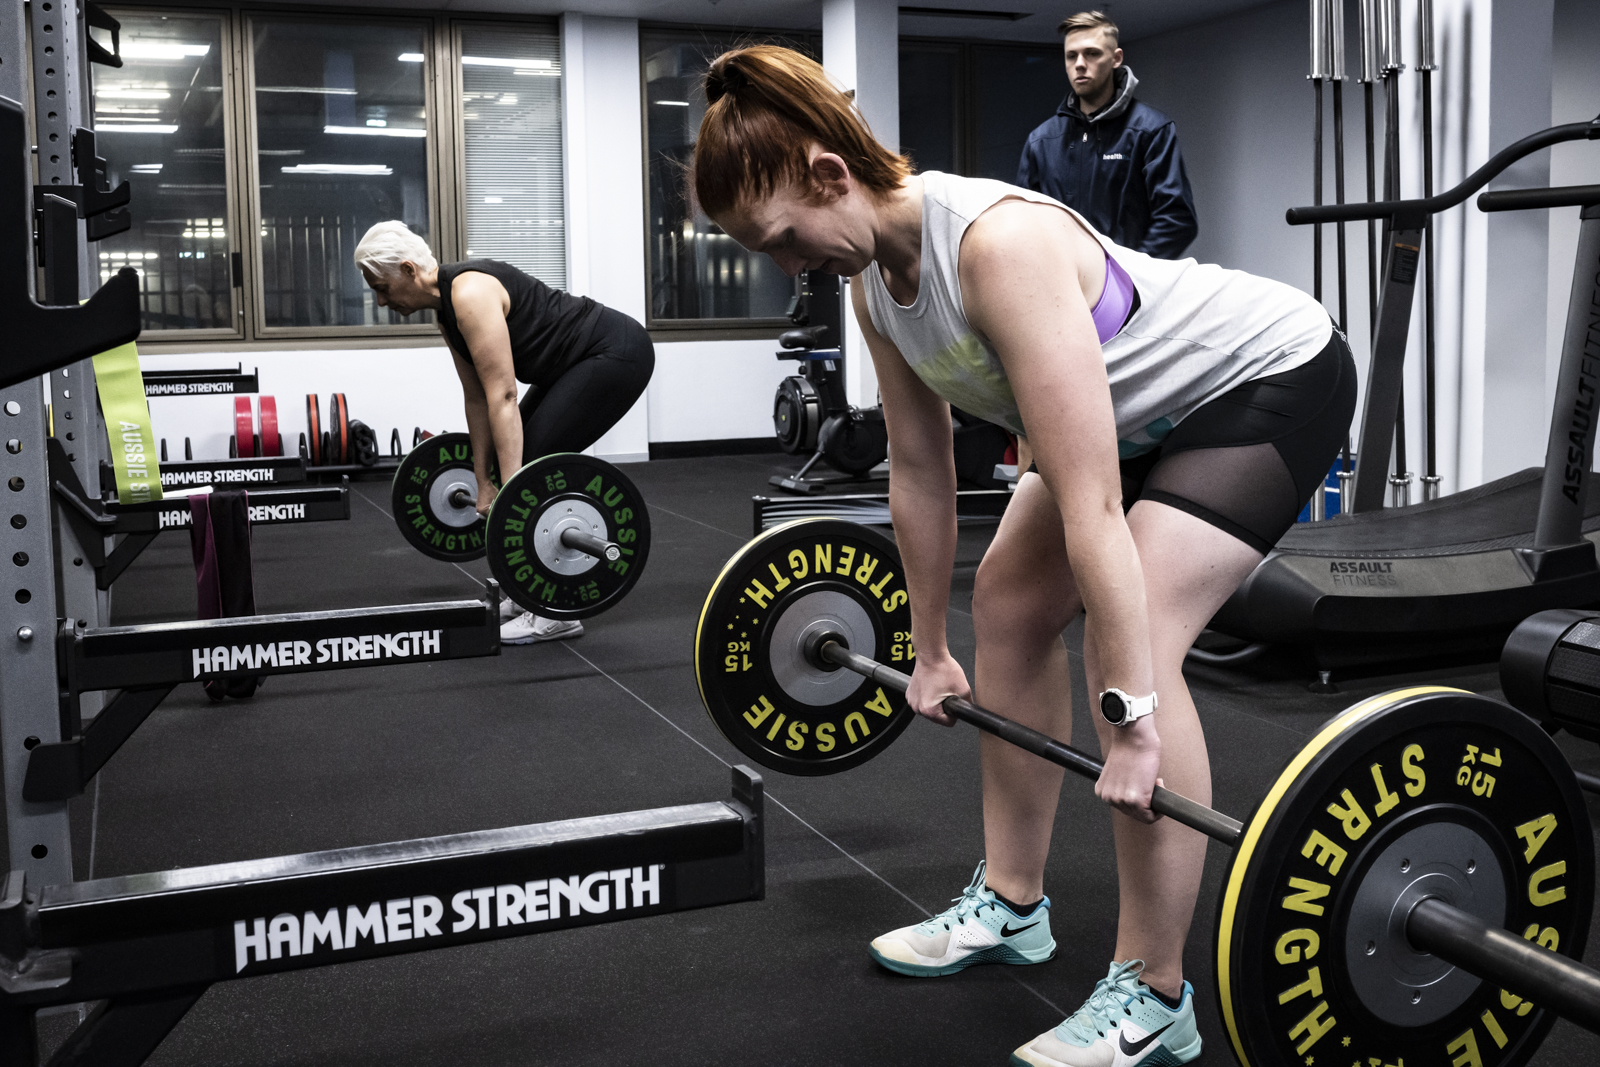 Athletic performer - barbell